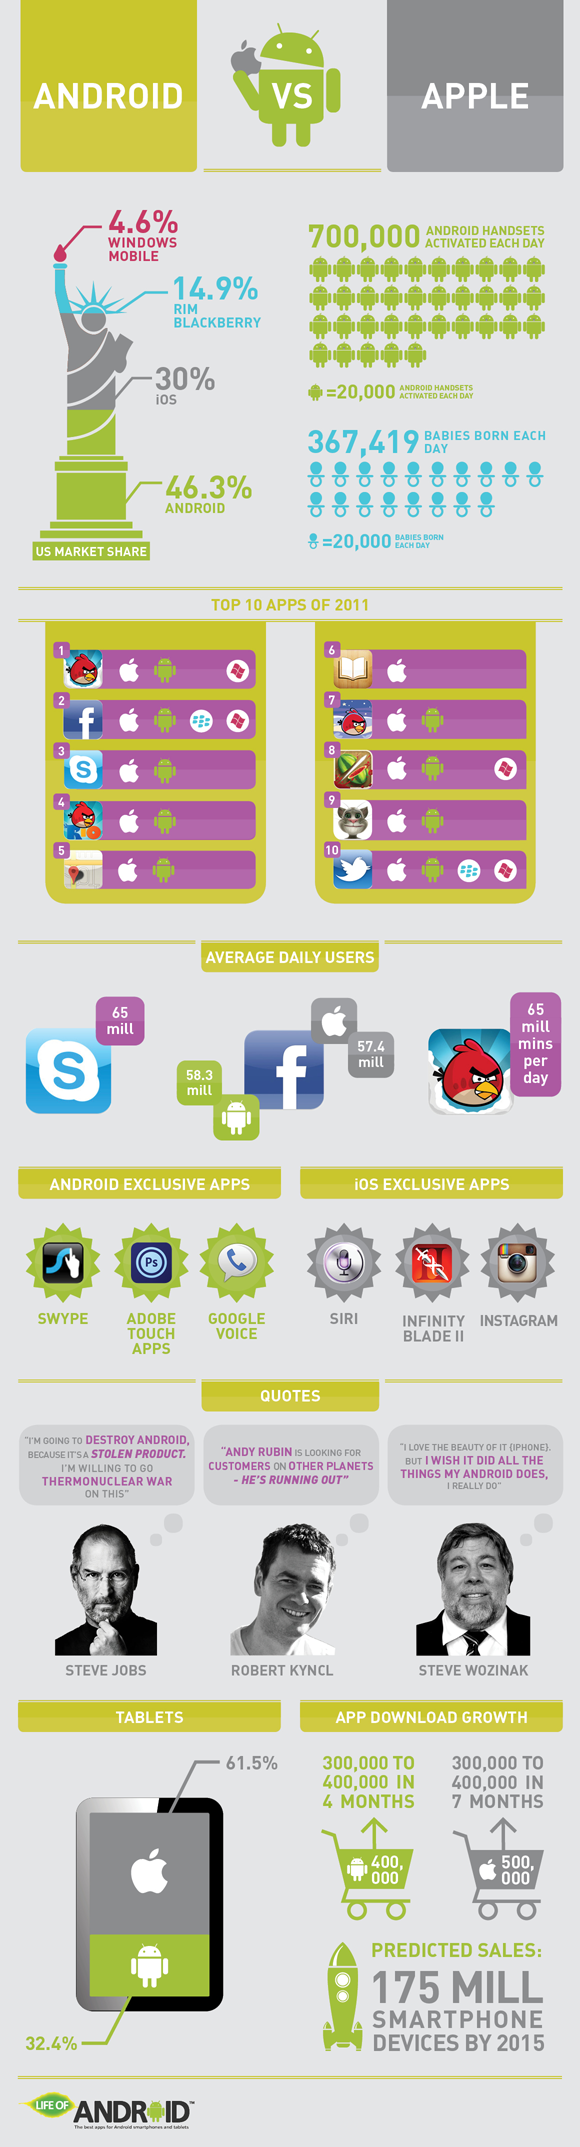 Android Vs. #Apple #infographic